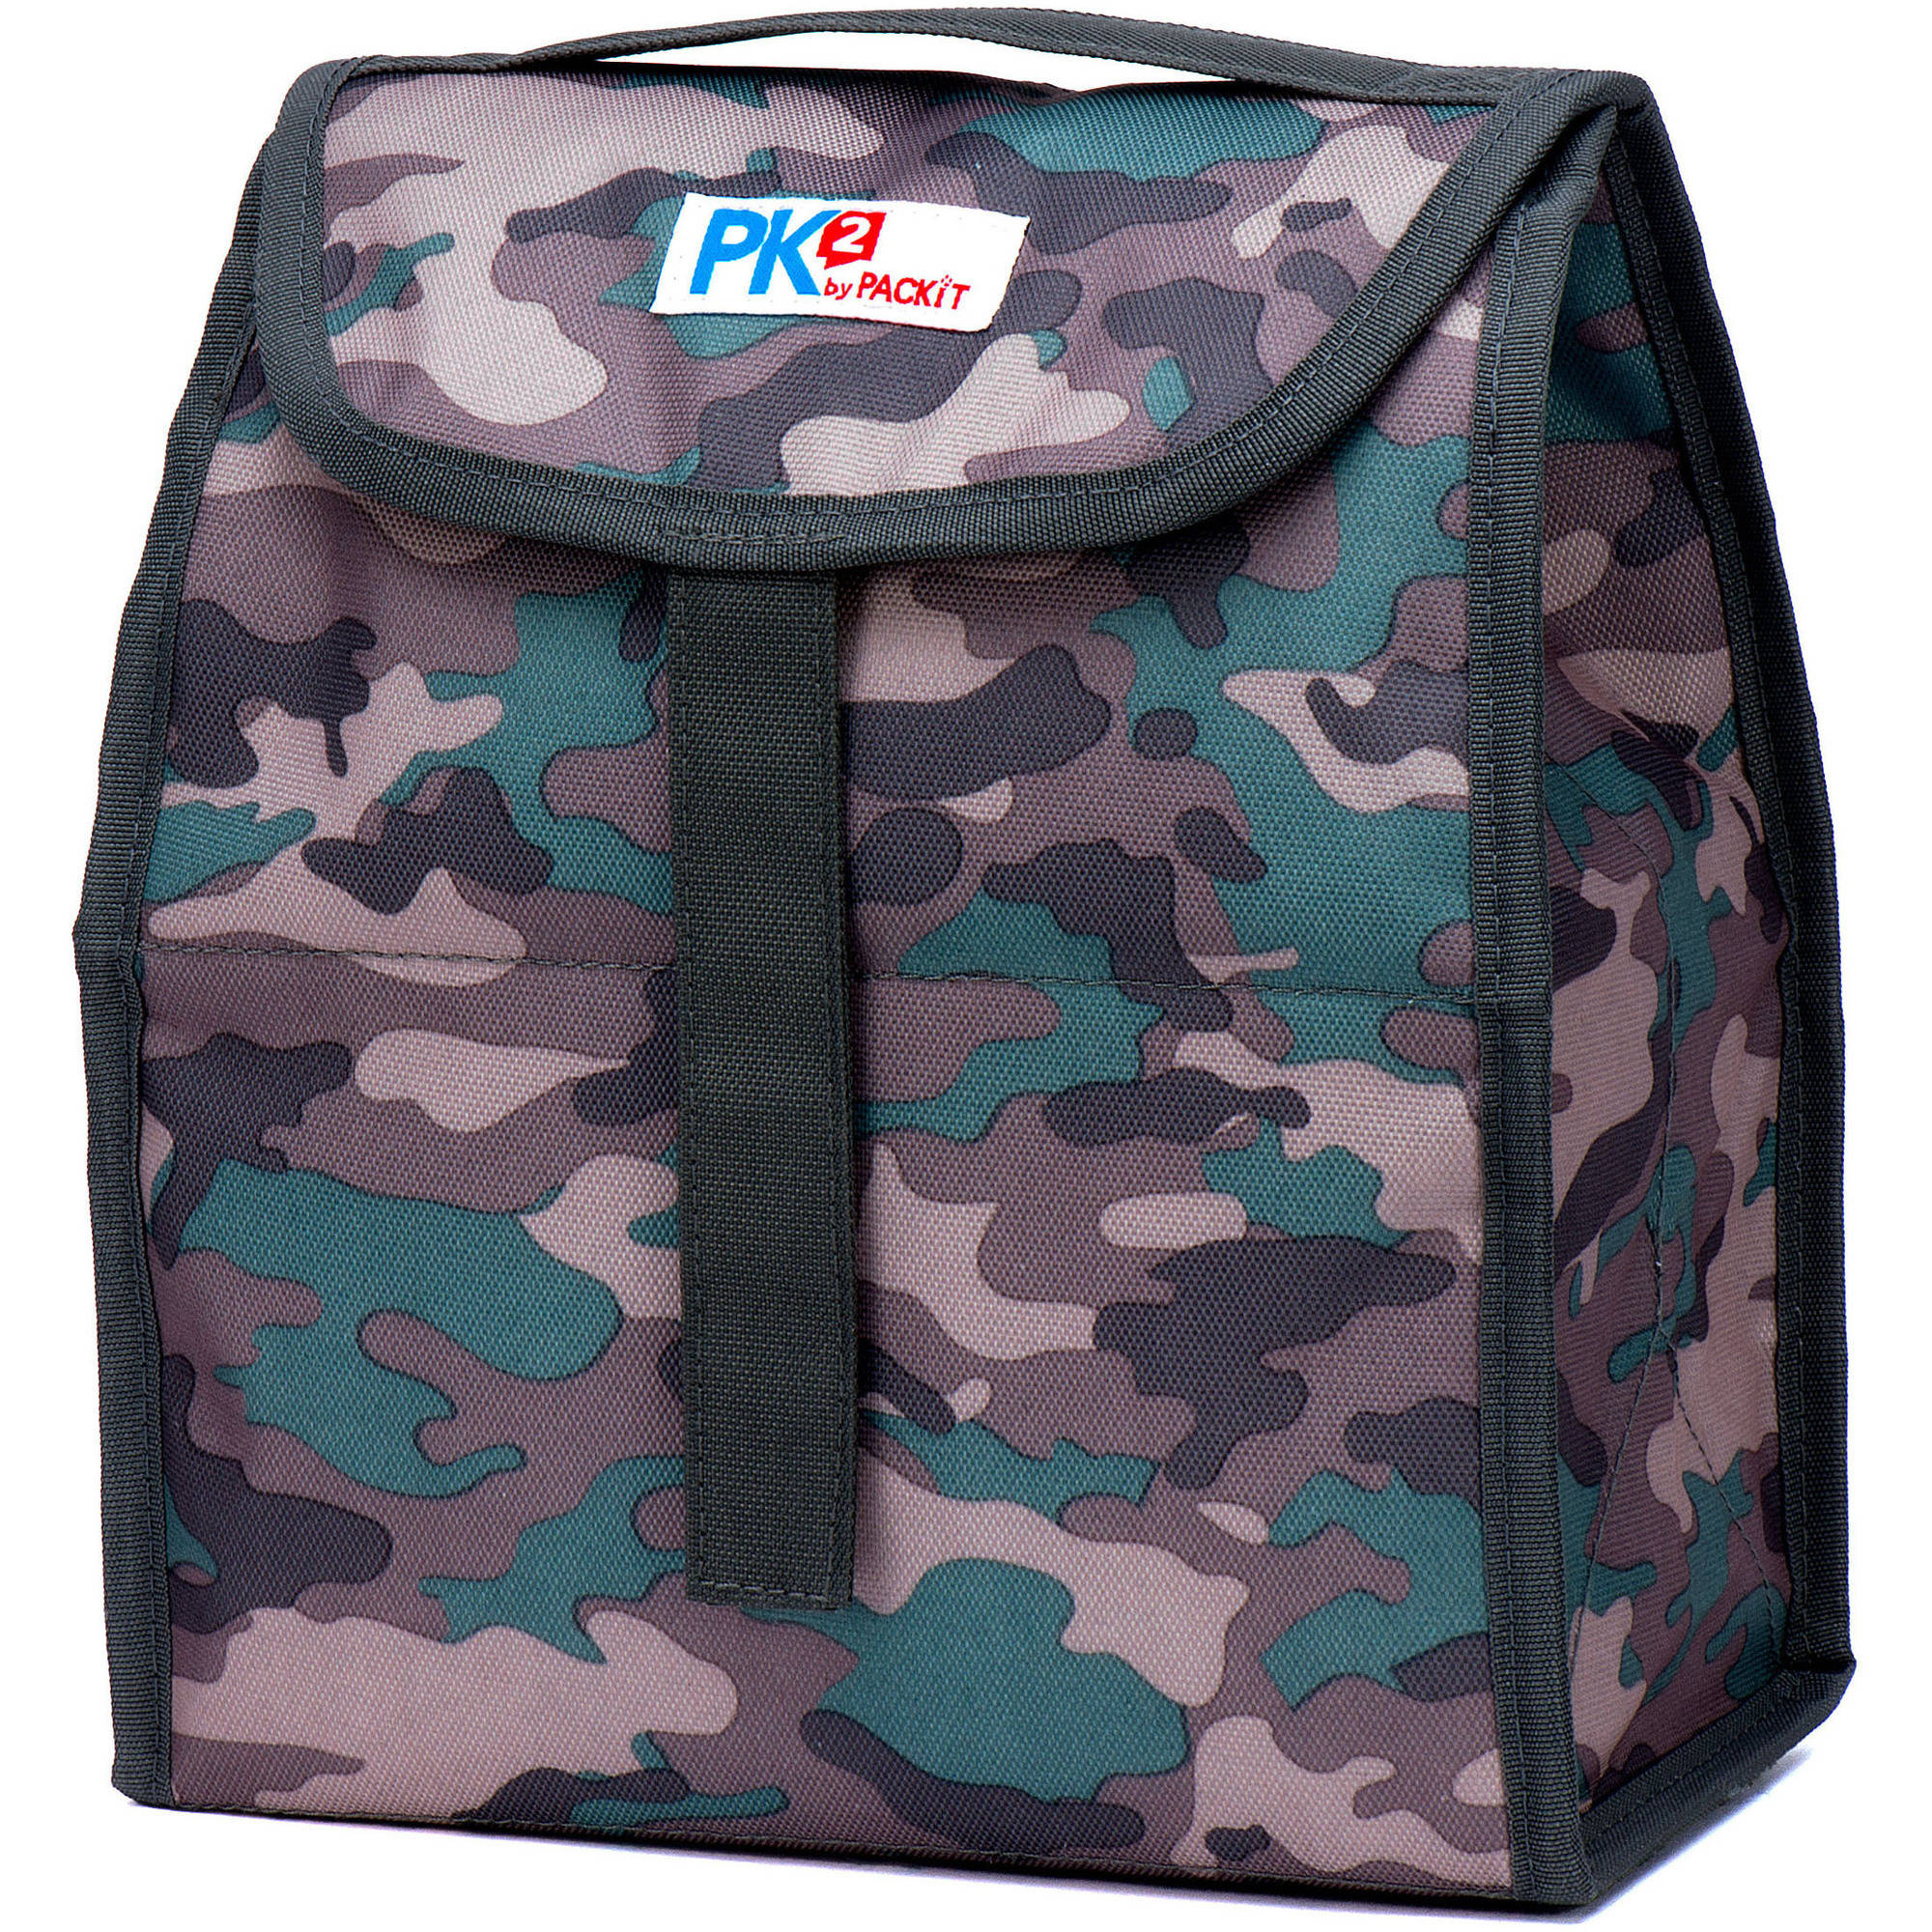 PackIt Juvenile Mod PK2 Camo Lunch Bag